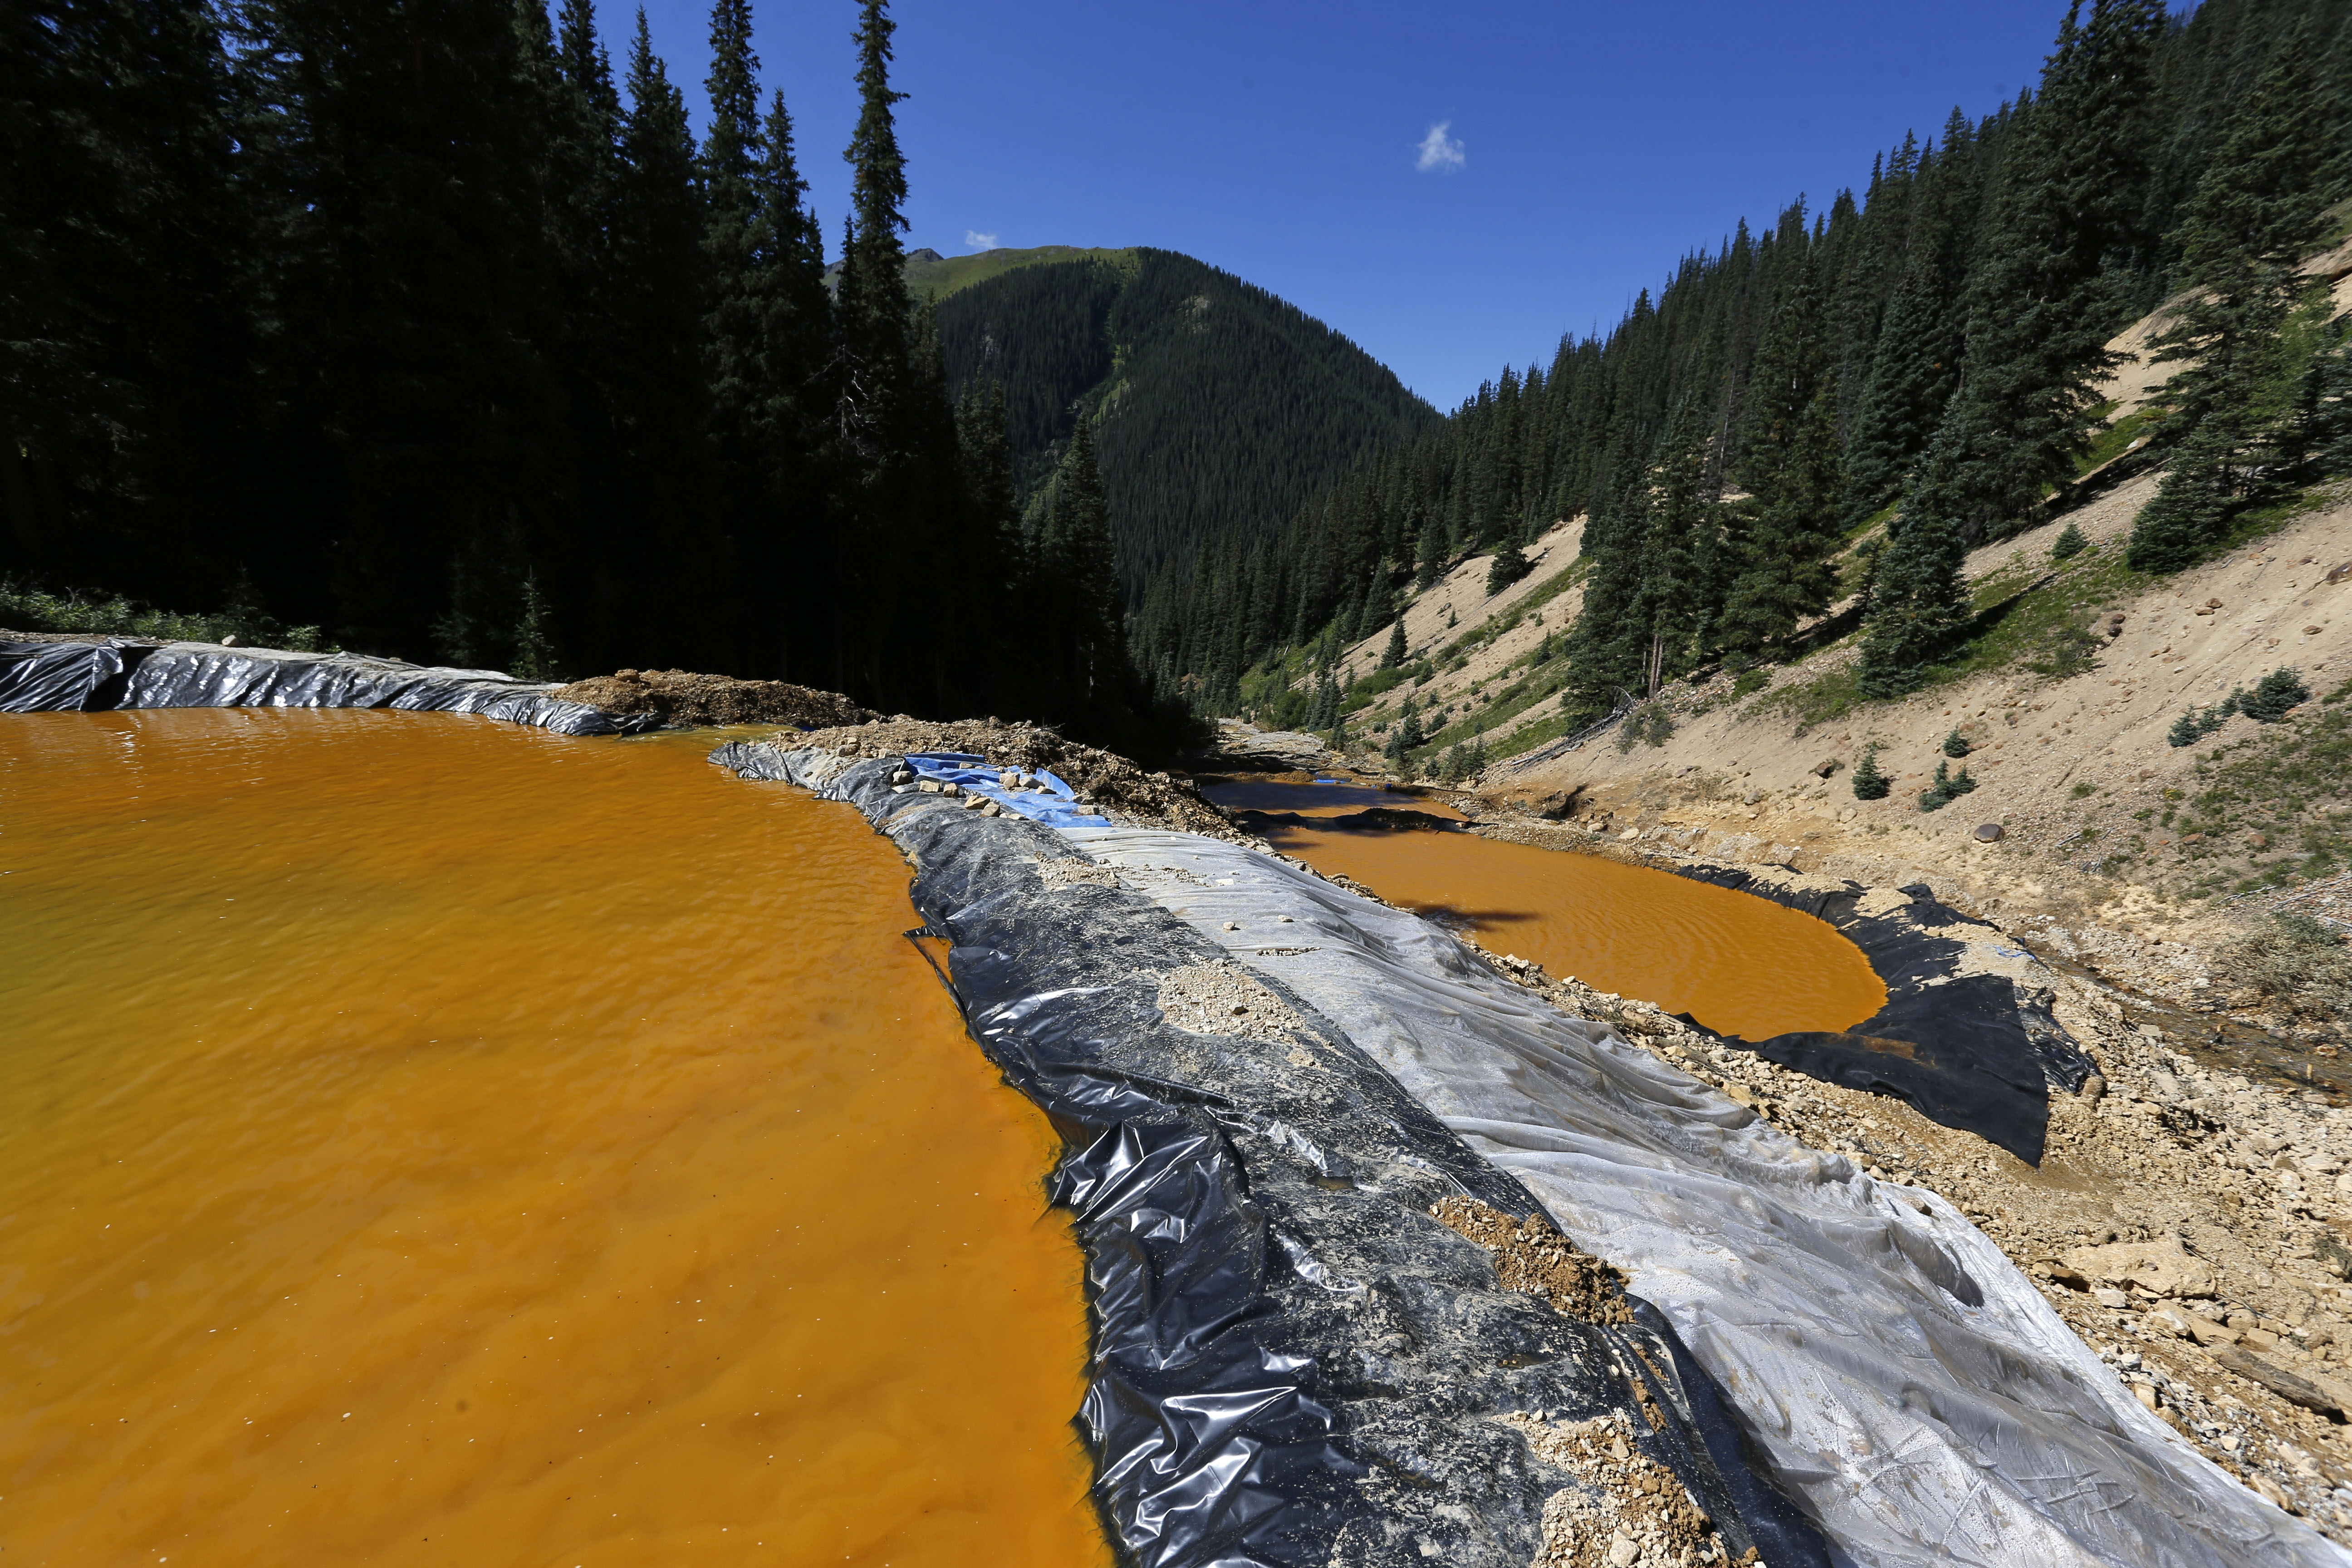 20150814 In this Aug. 14, 2015, photo, water flows through a series of sediment retention ponds built to reduce heavy metal and chemical contaminants from the Gold King Mine wastewater accident, in the spillway about 1/4 mile downstream from the mine, outside Silverton, Colo. Colorado officials are disputing a key claim by federal agencies about a massive spill of toxic wastewater from an inactive mine.